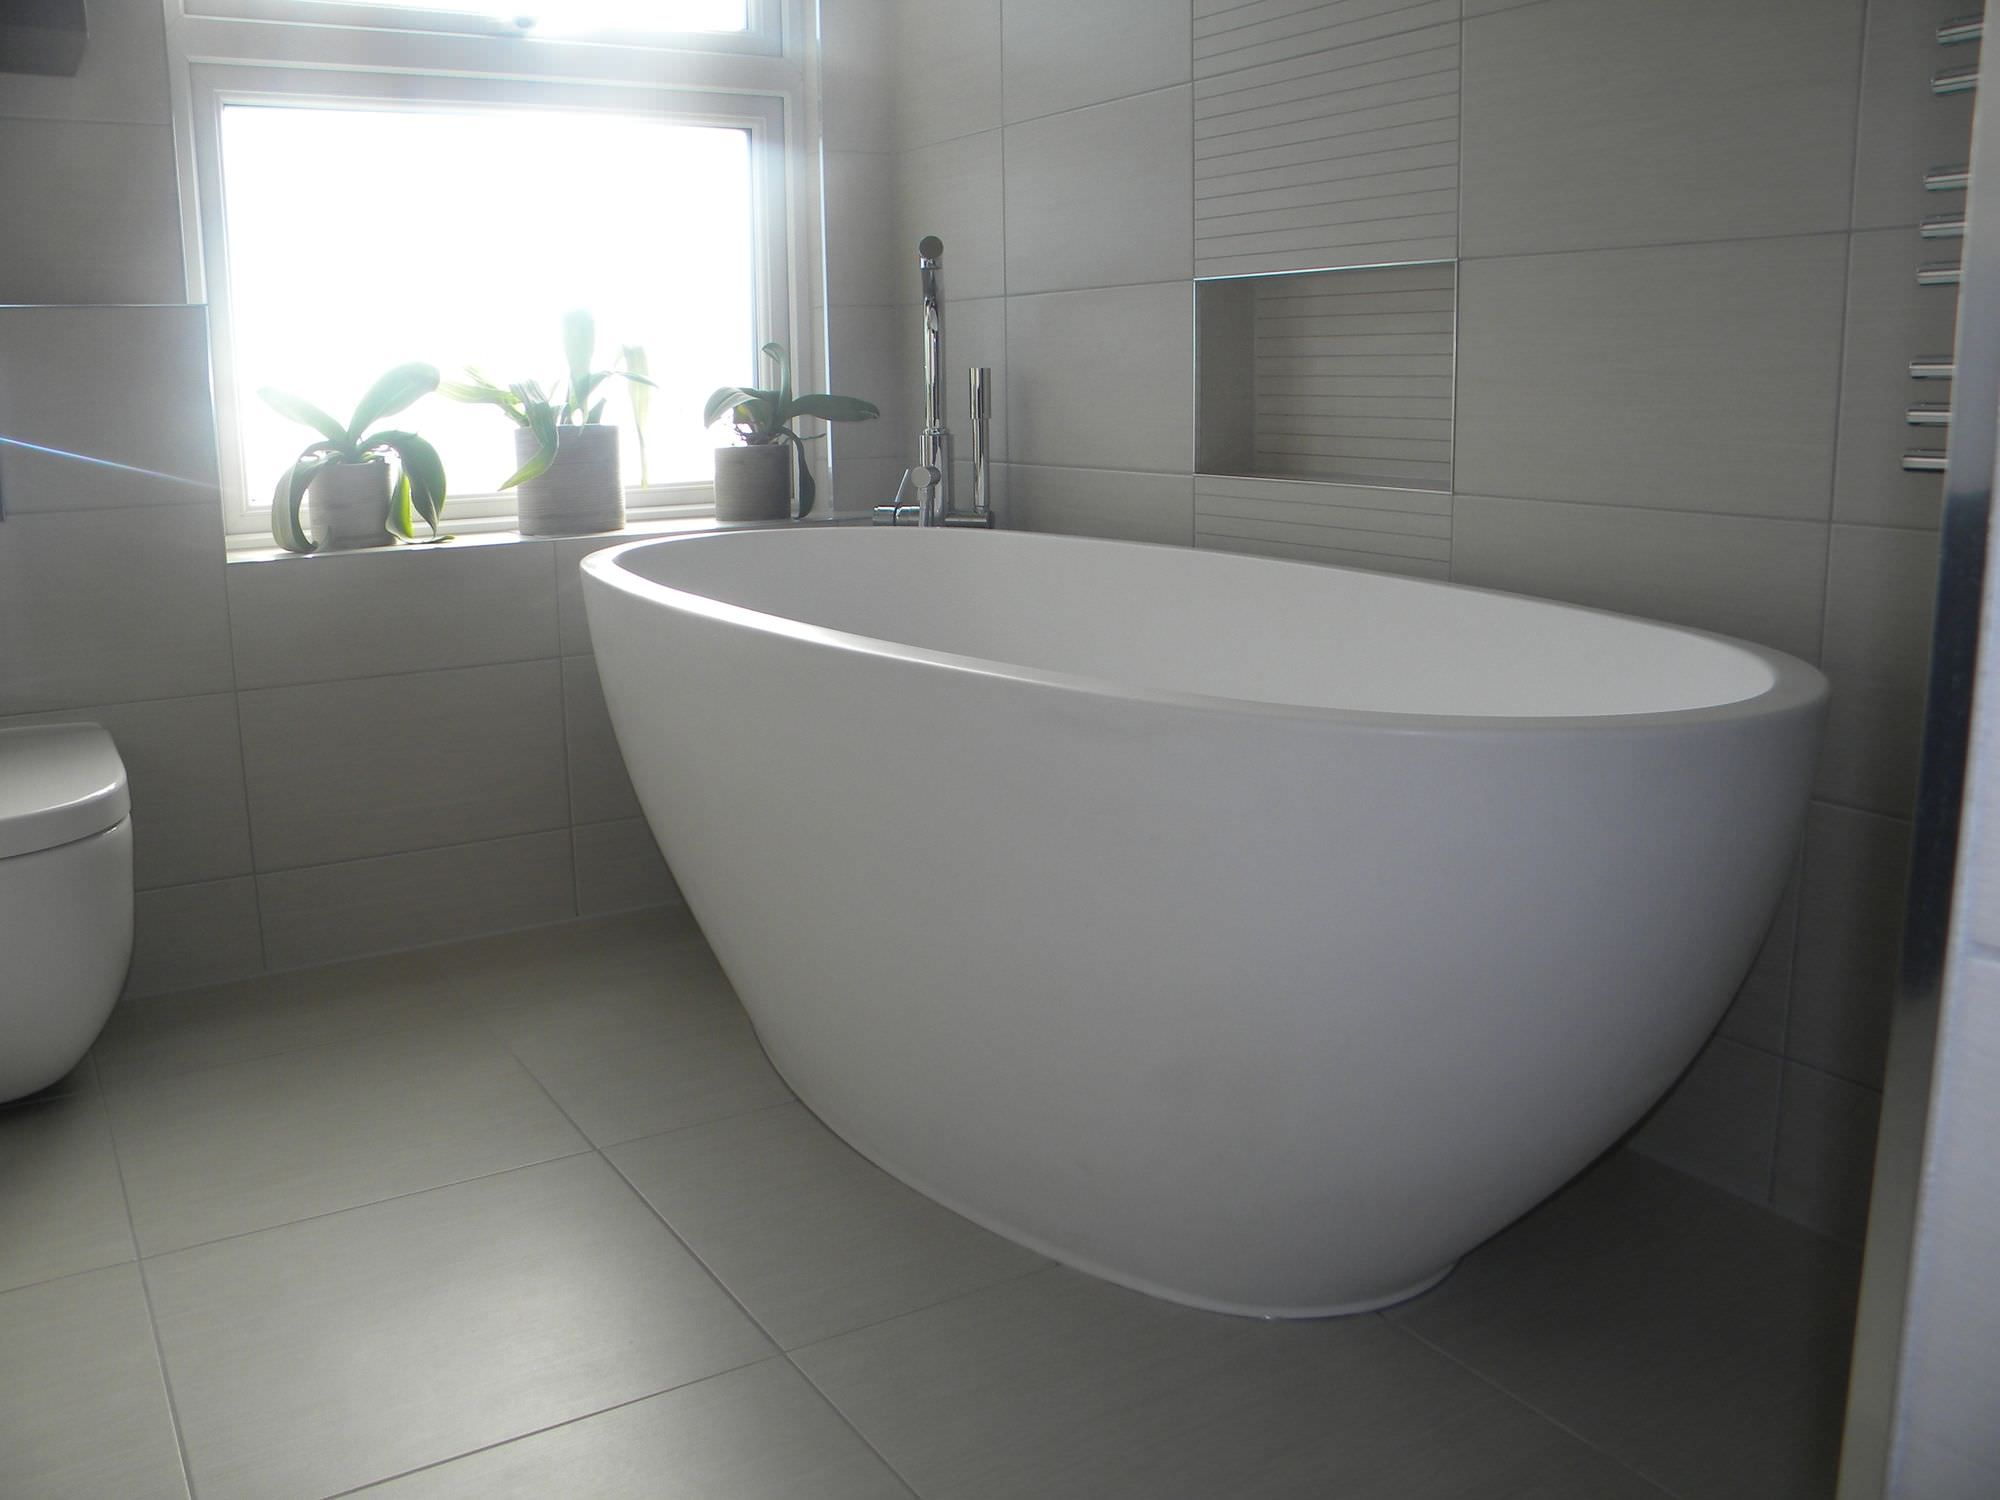 g-astonishing-small-apartment-bathtubs-small-bathtubs-with-jets